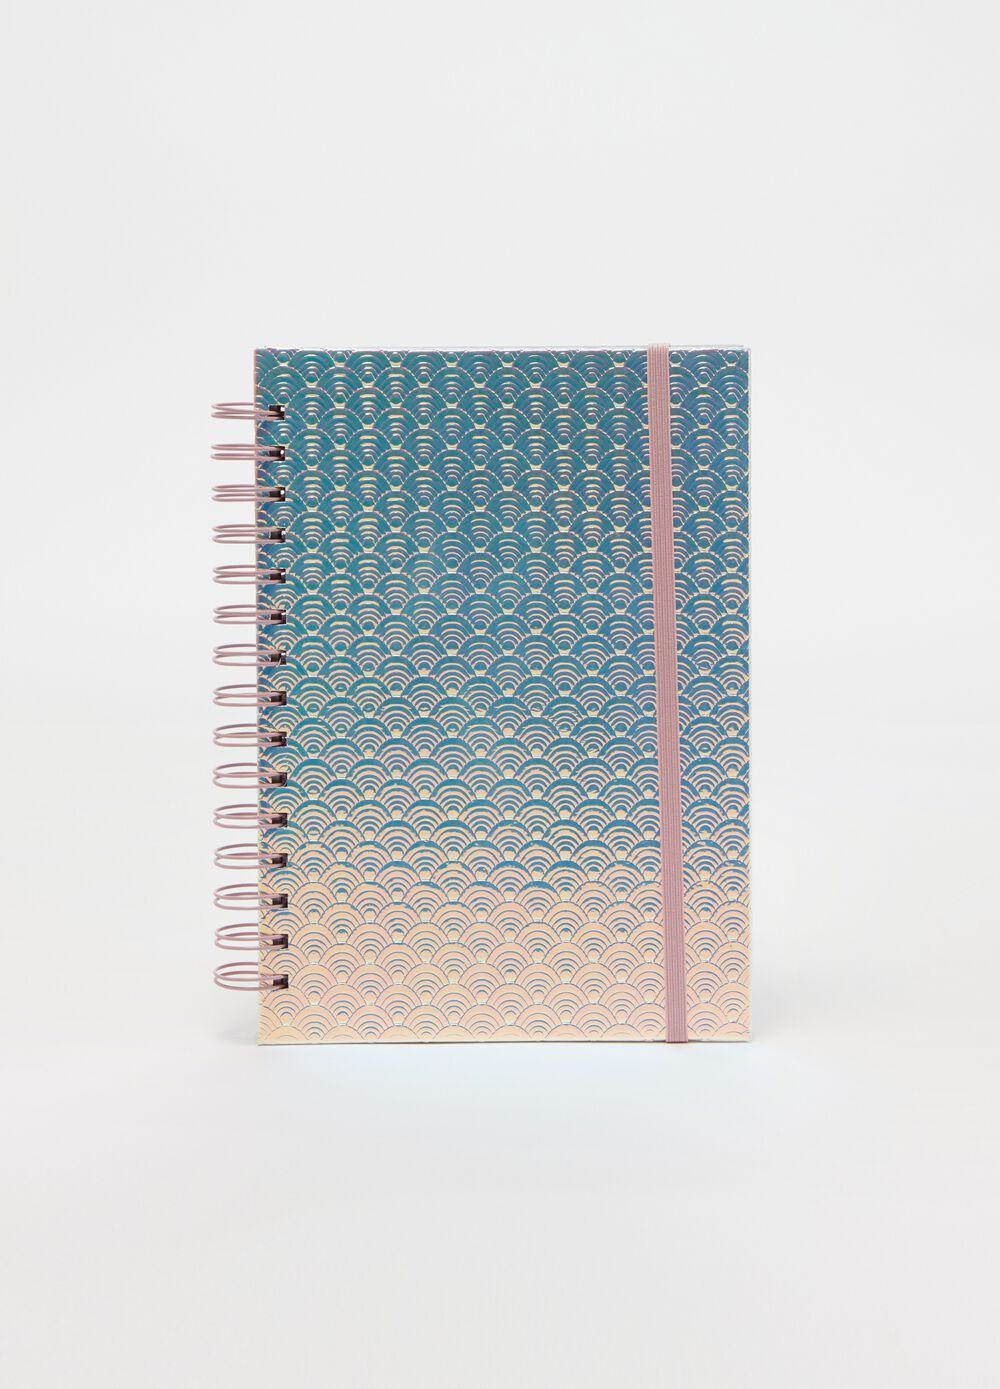 Notebook with spiral binding and pattern